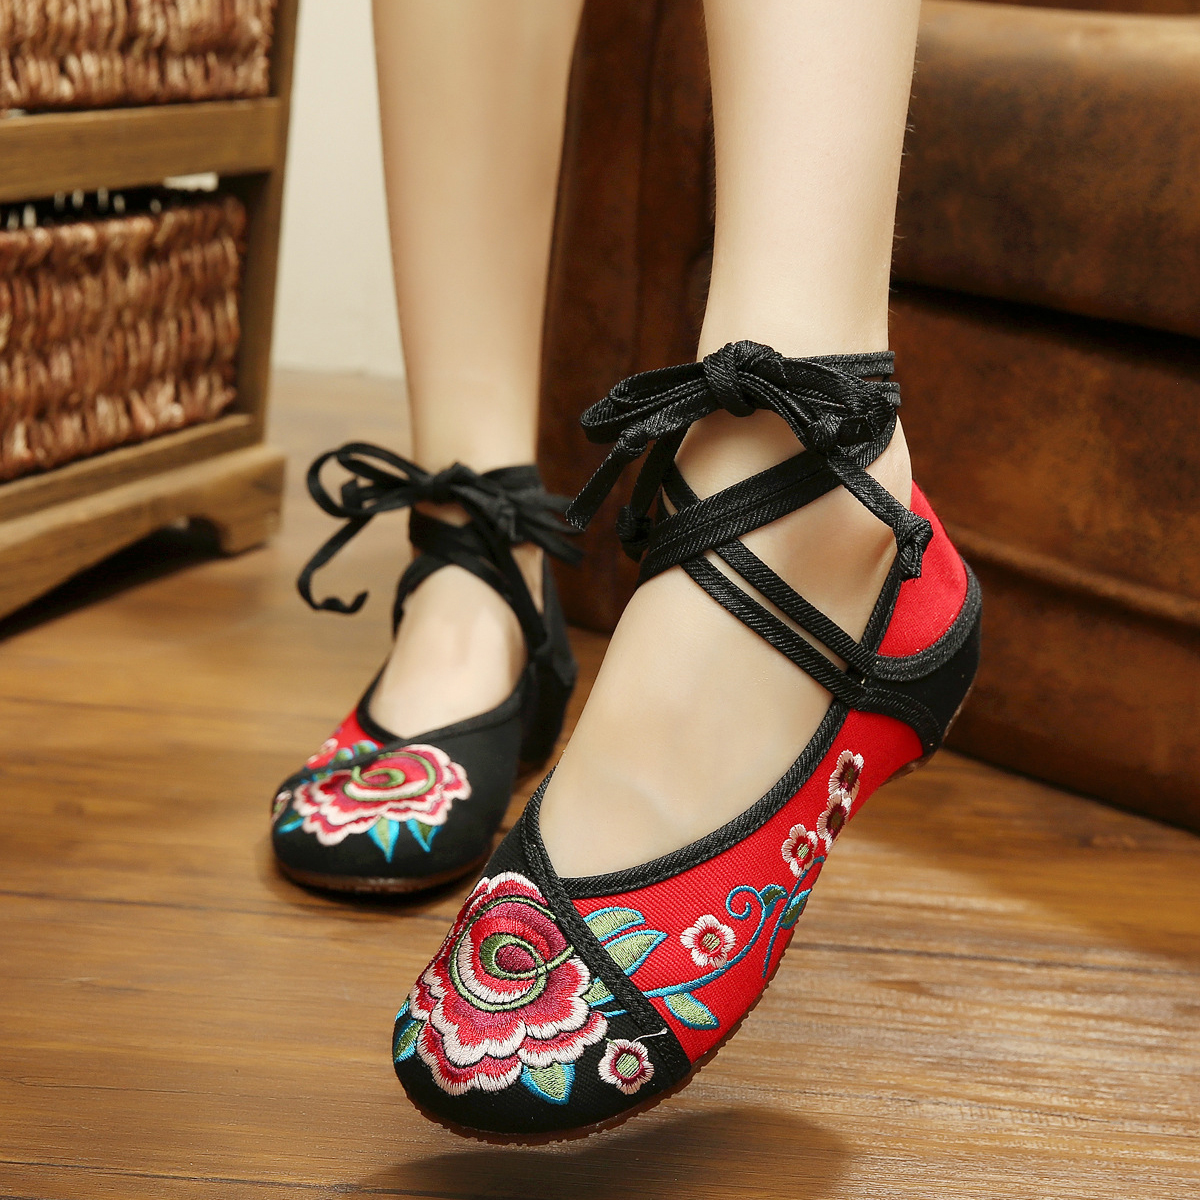 New patchwork colorful womens dance shoes fashion sexy flowers embroidered Chinese style flats shoes for women<br><br>Aliexpress